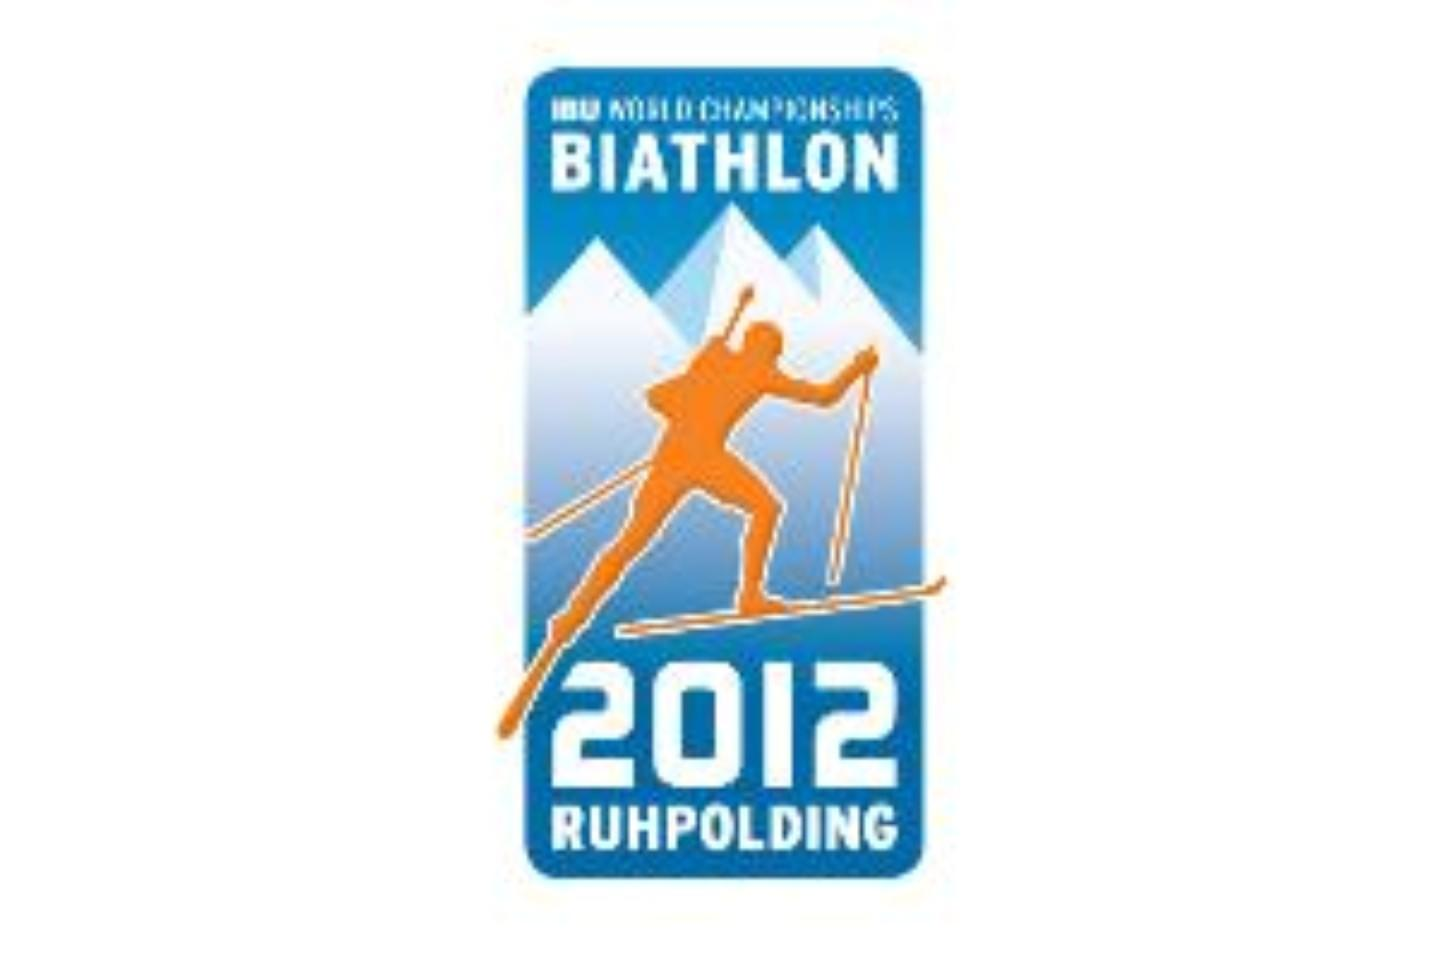 Biathlon World Championships Tickets Buy Or Sell Biathlon World